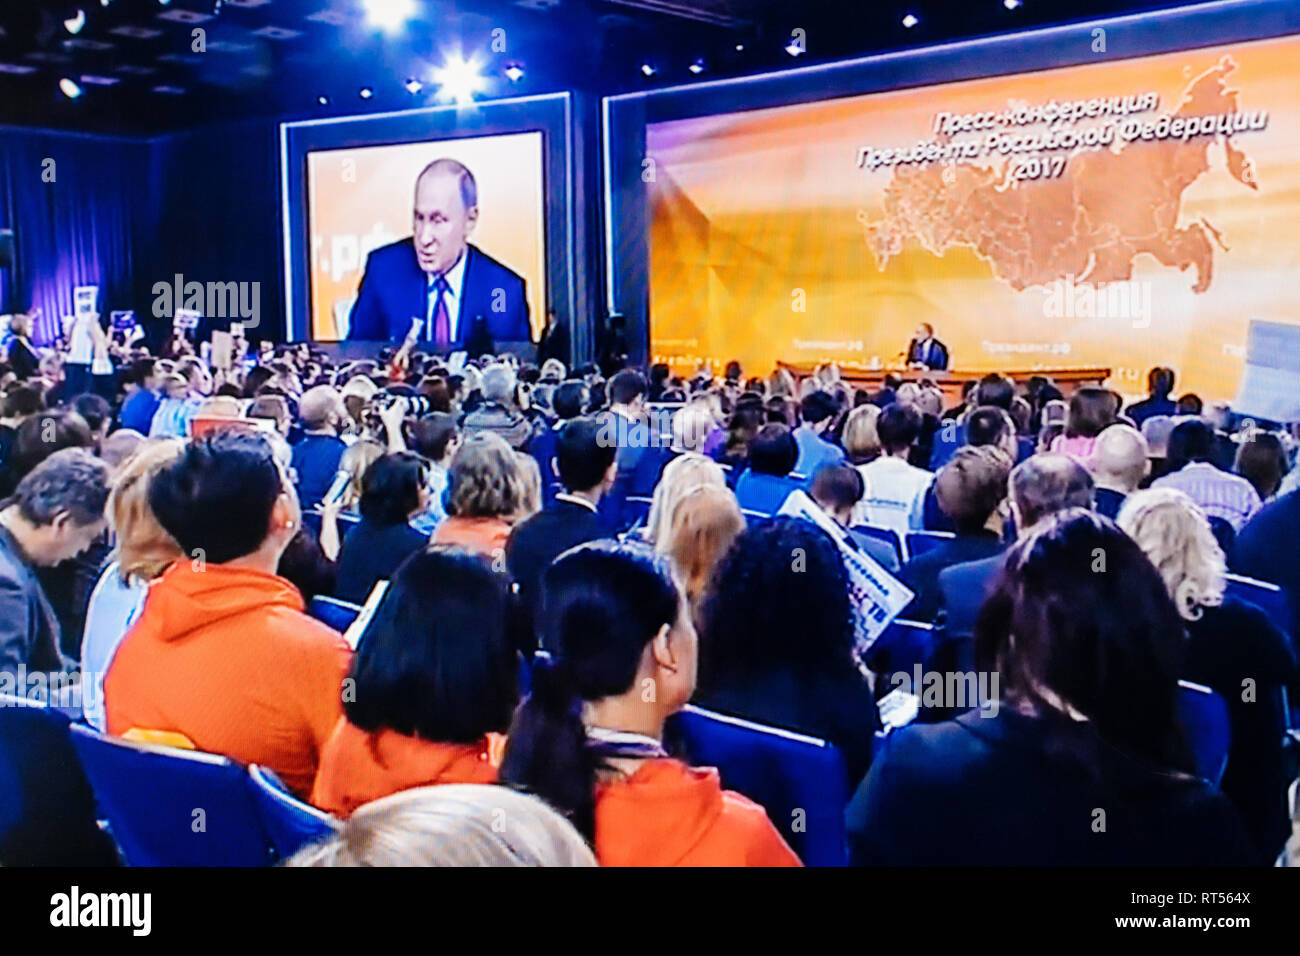 PARIS, FRANCE - DEC 14, 2017: POV watching on Youtube live channel of Rossiya RTR the Russian President Vladimir Putin give final media Q&A before March election - large hall with media journalists - Stock Image